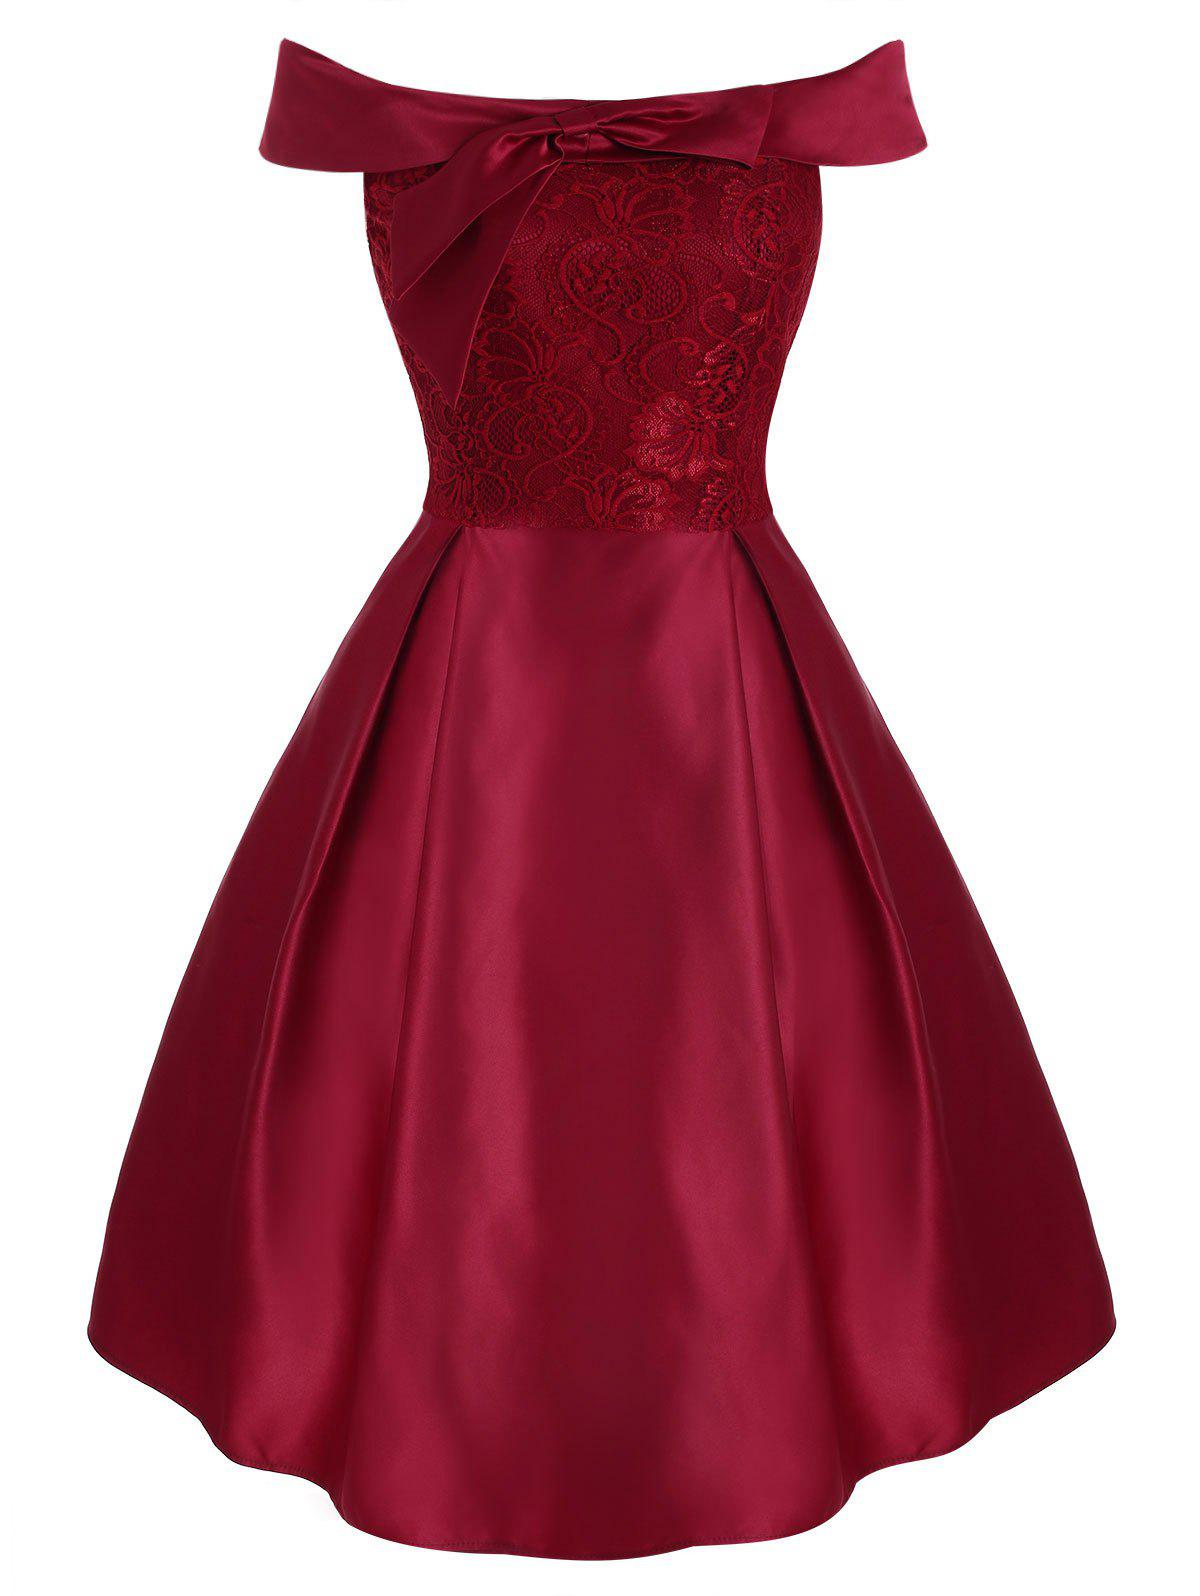 Empiècements en dentelle Encolure Foldover Party Dress - Rouge Cerise L